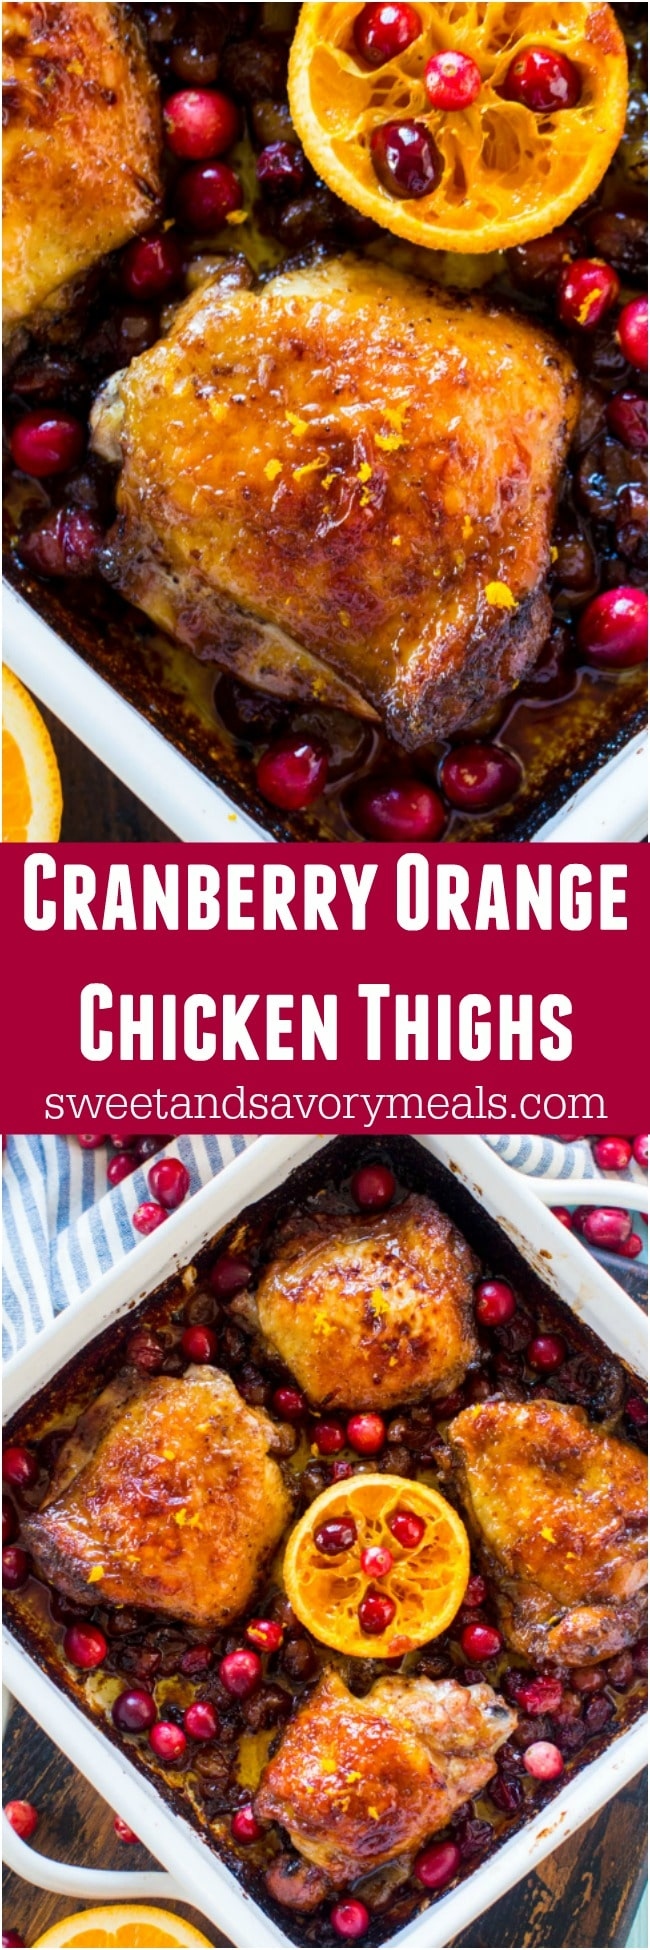 One Pan Cranberry Orange Chicken is the perfect, seasonal meal made with juicy, tart cranberries and fresh orange juice and zest.